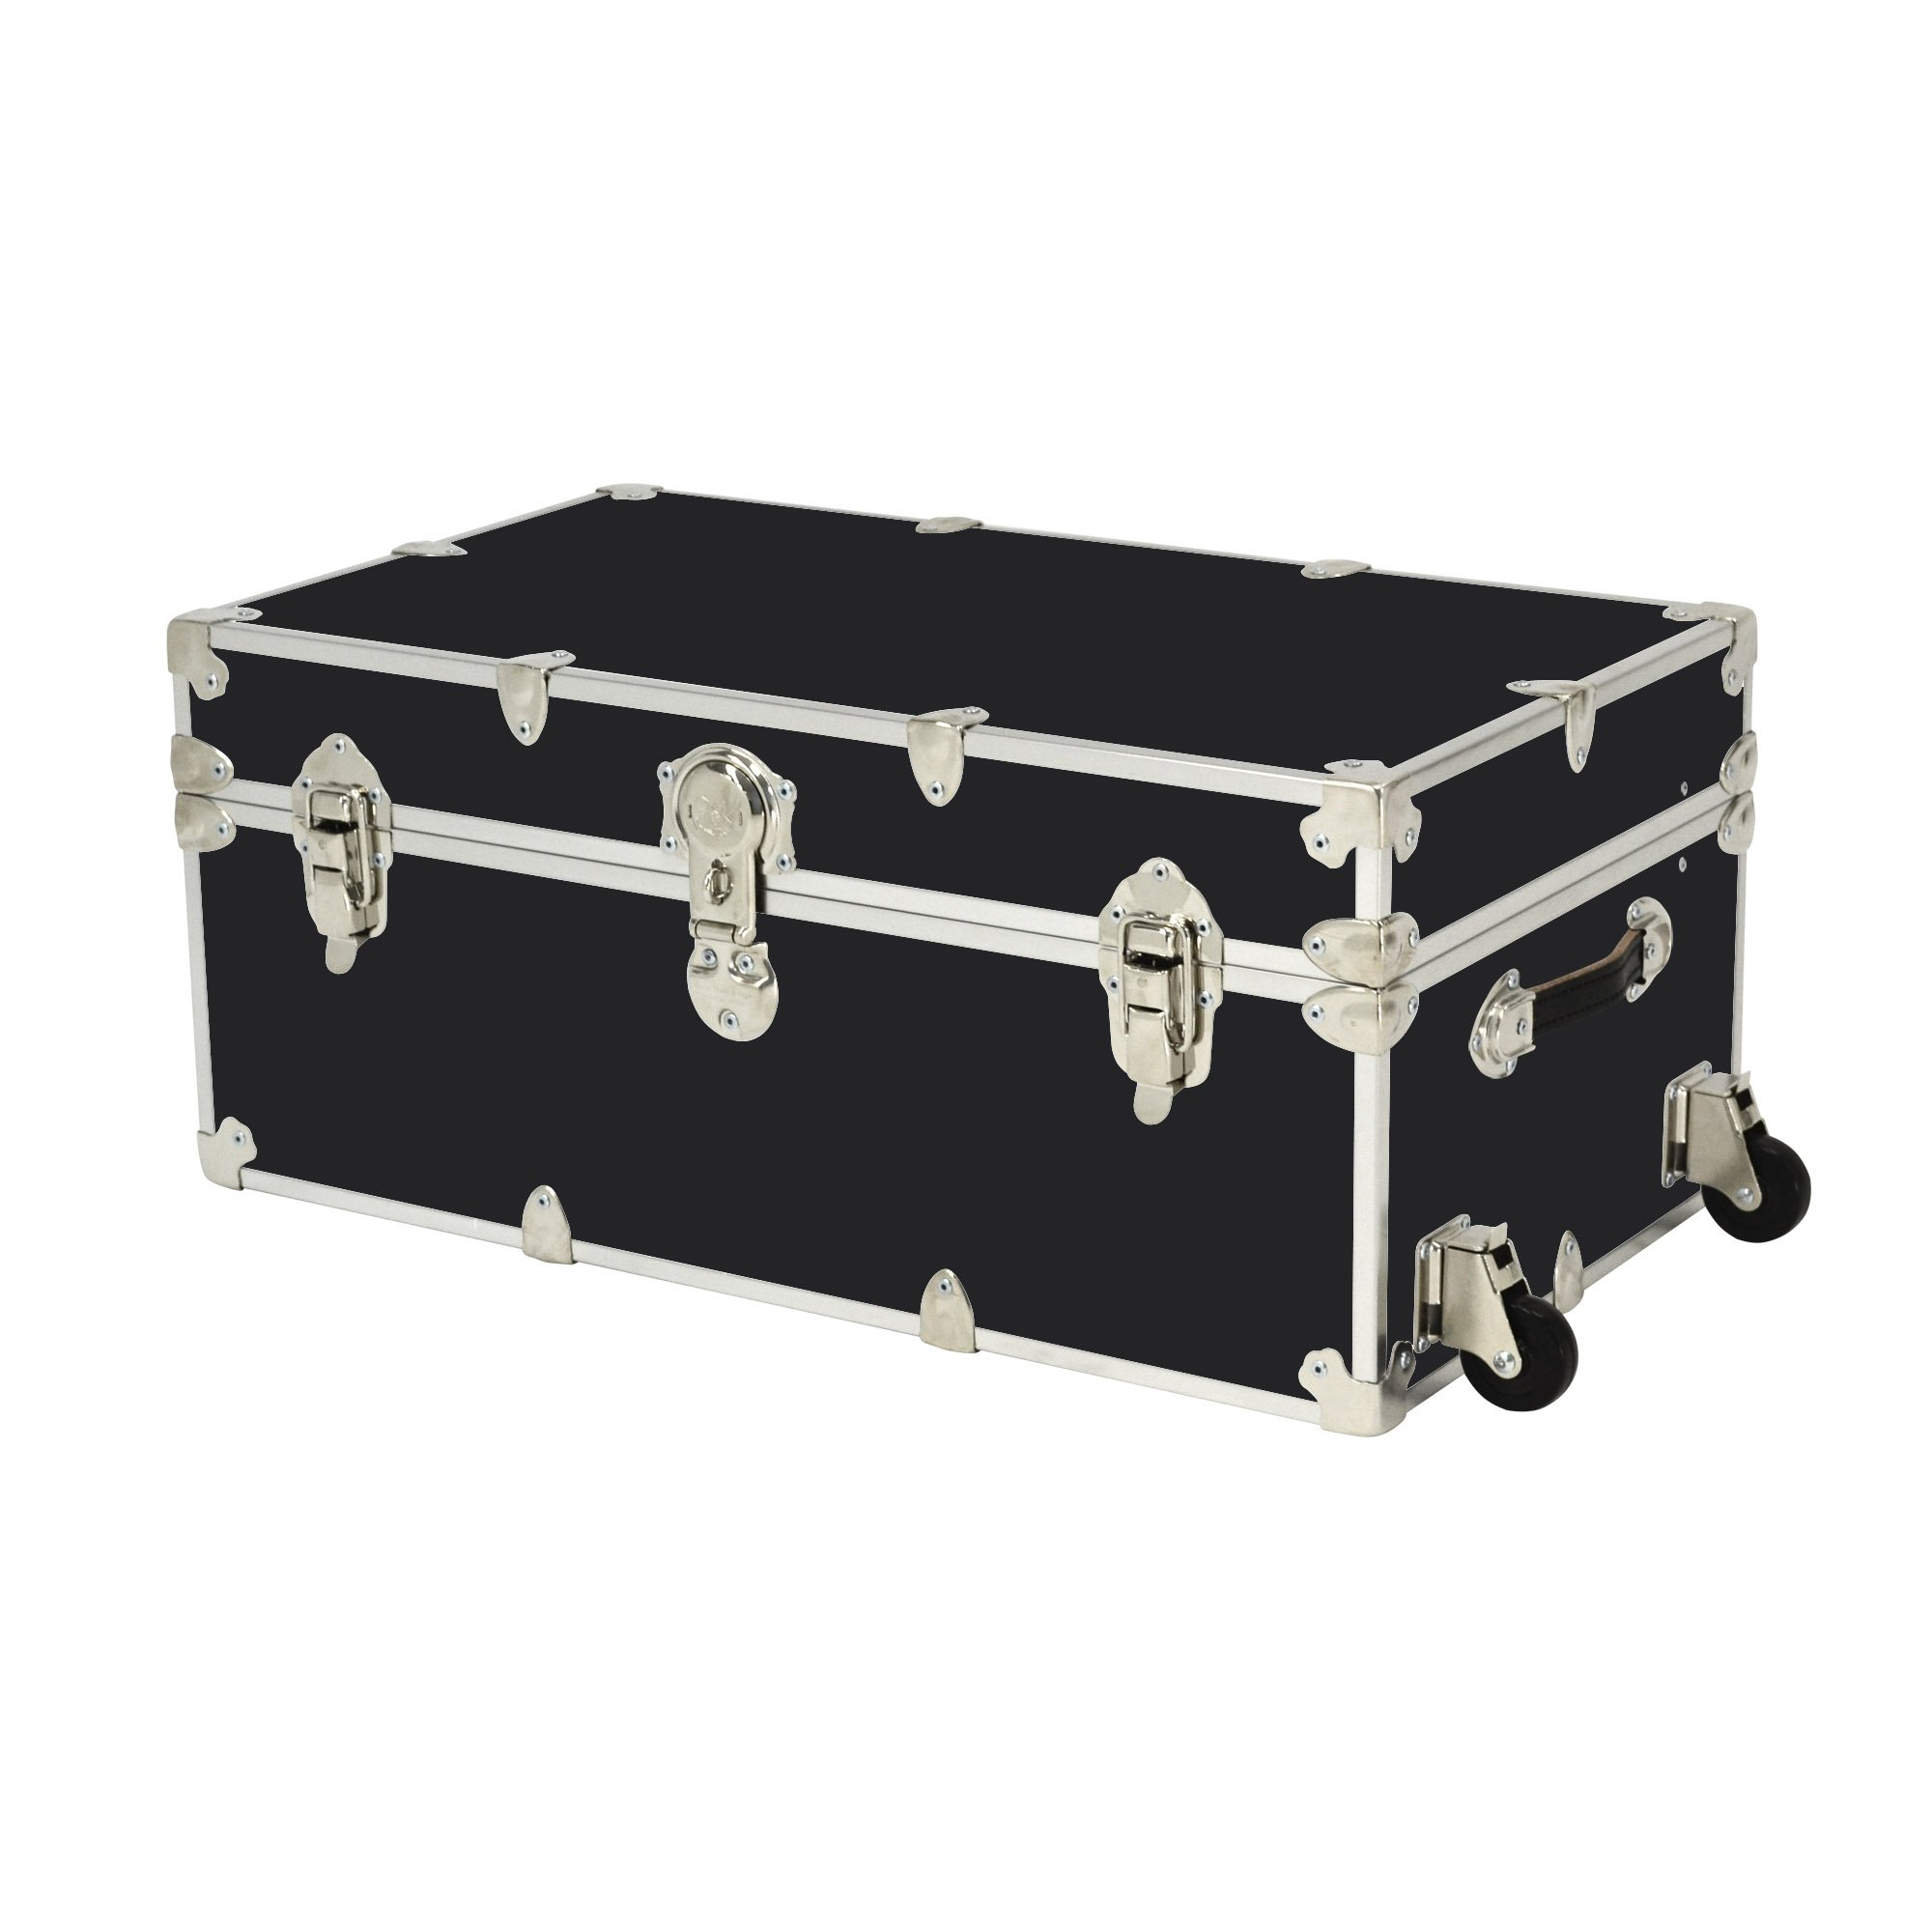 Rhino Trunk and Case Large Armor Trunk with Wheels, 32'' x 18'' x 14'', Black